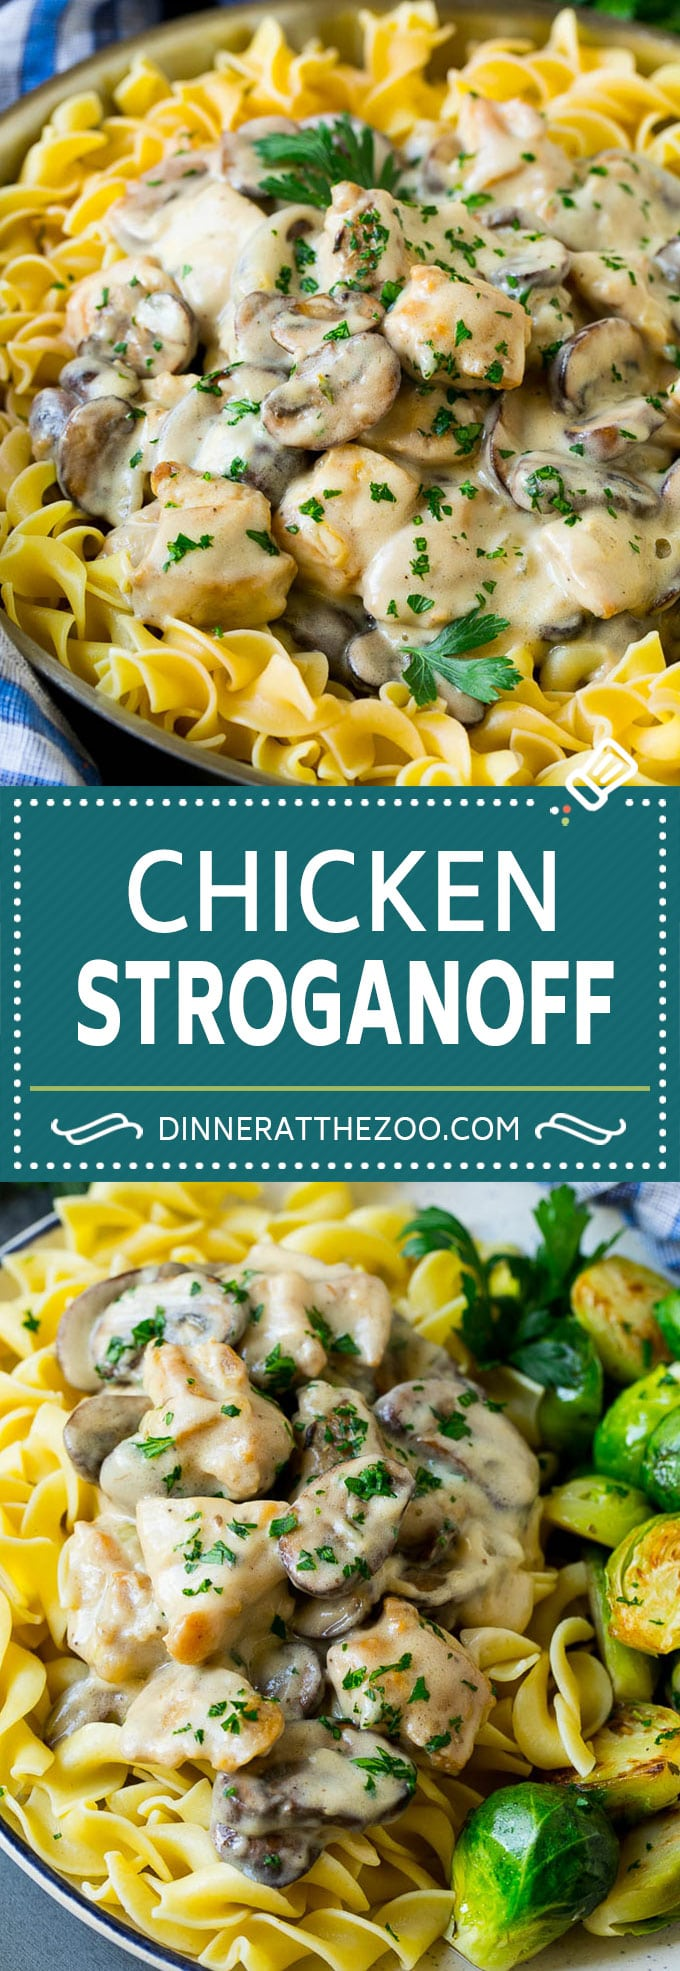 Chicken Stroganoff Recipe | Chicken and Mushrooms #chicken #mushrooms #stroganoff #dinner #dinneratthezoo